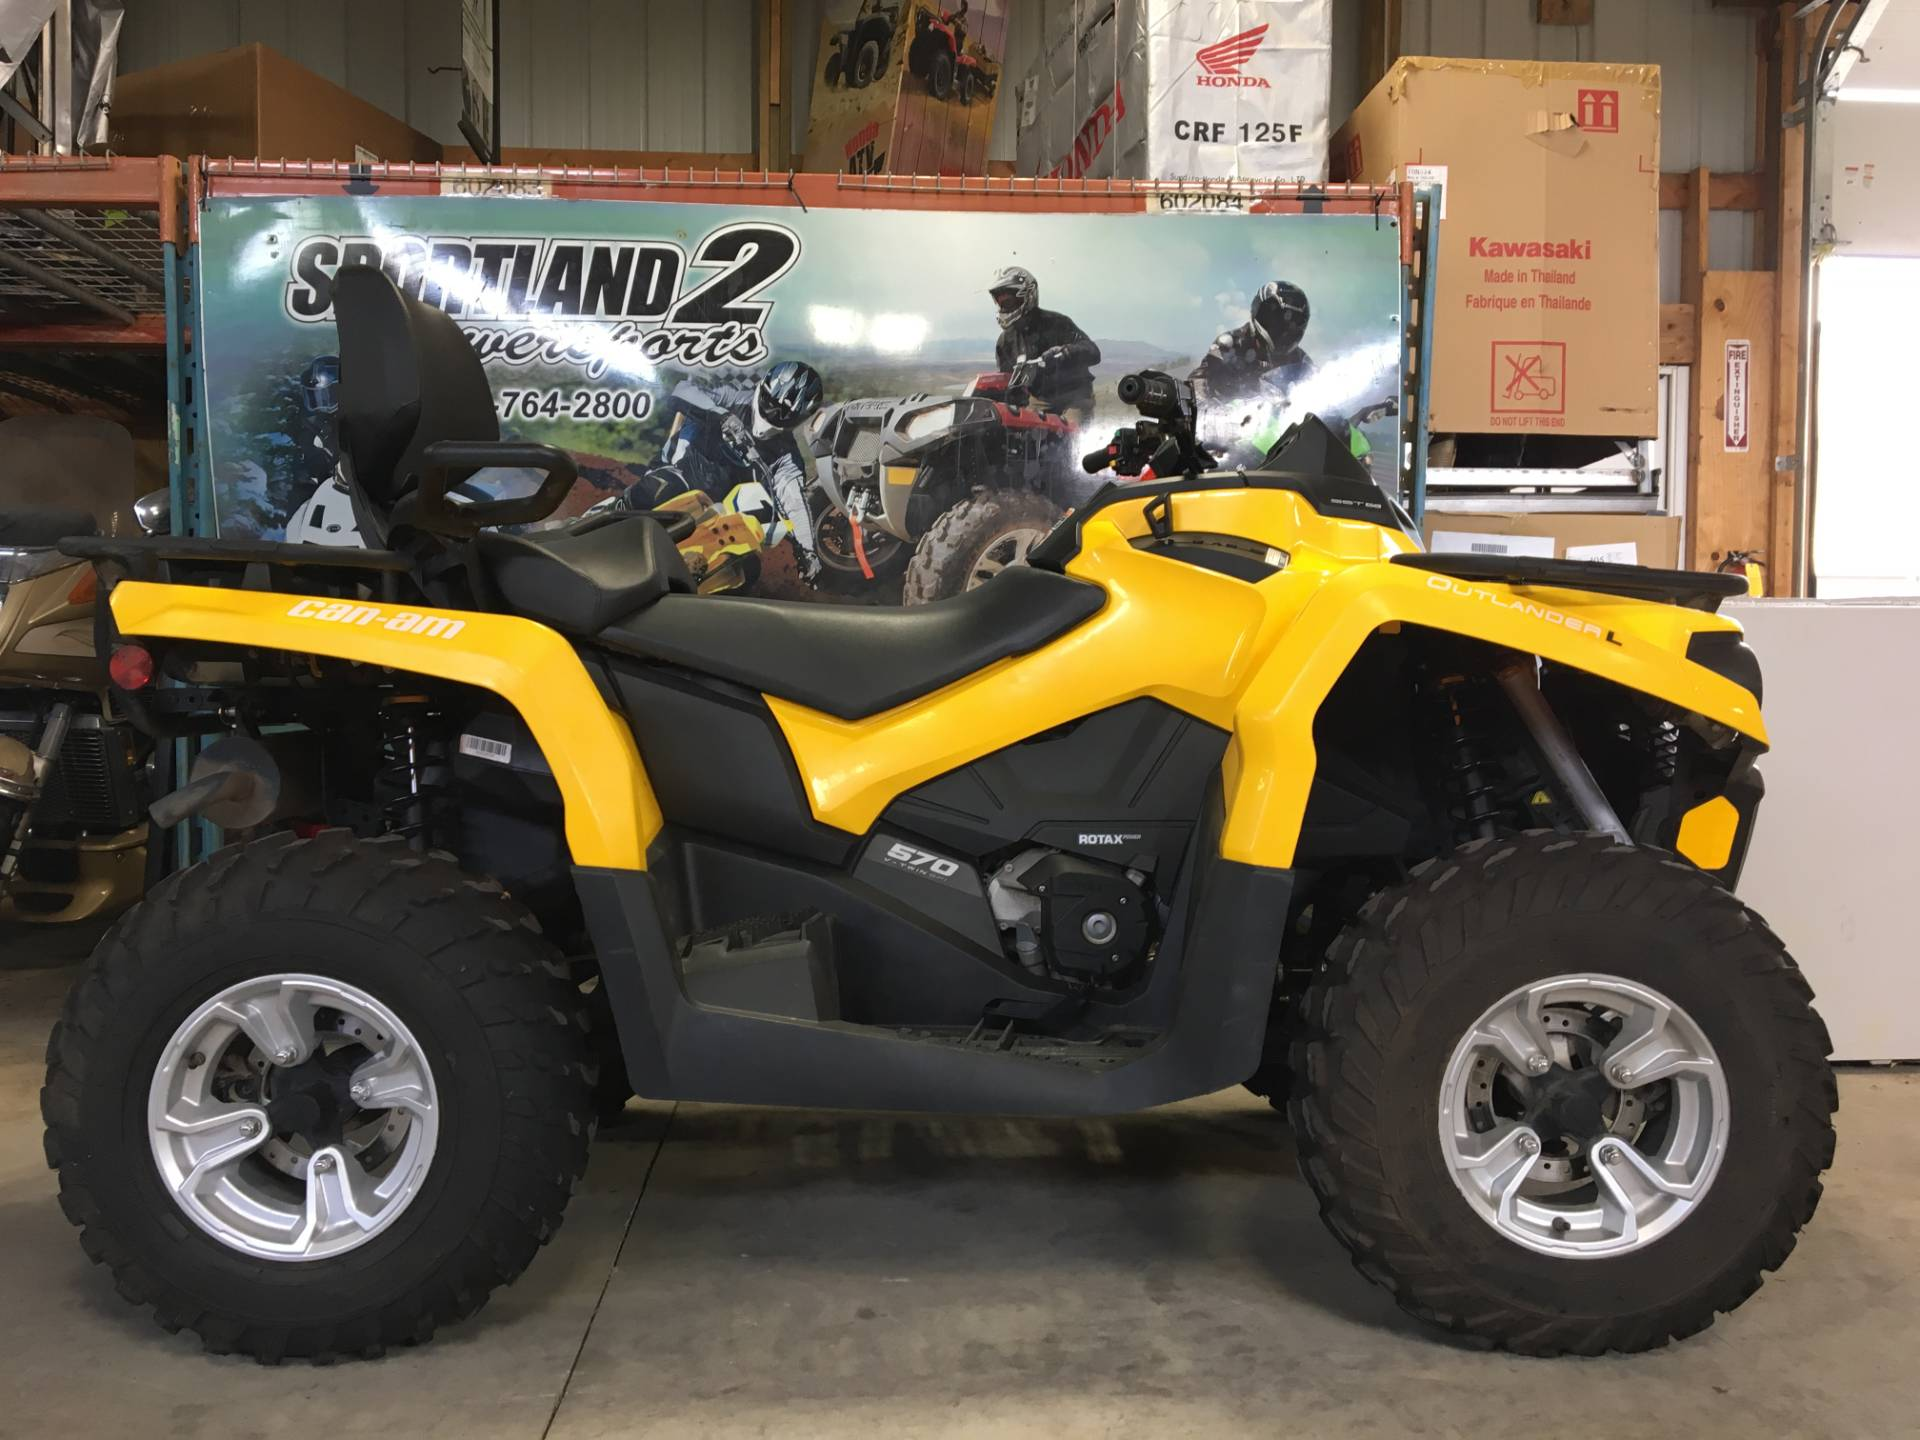 2016 Can-Am Outlander L MAX DPS 570 in Oak Creek, Wisconsin - Photo 1